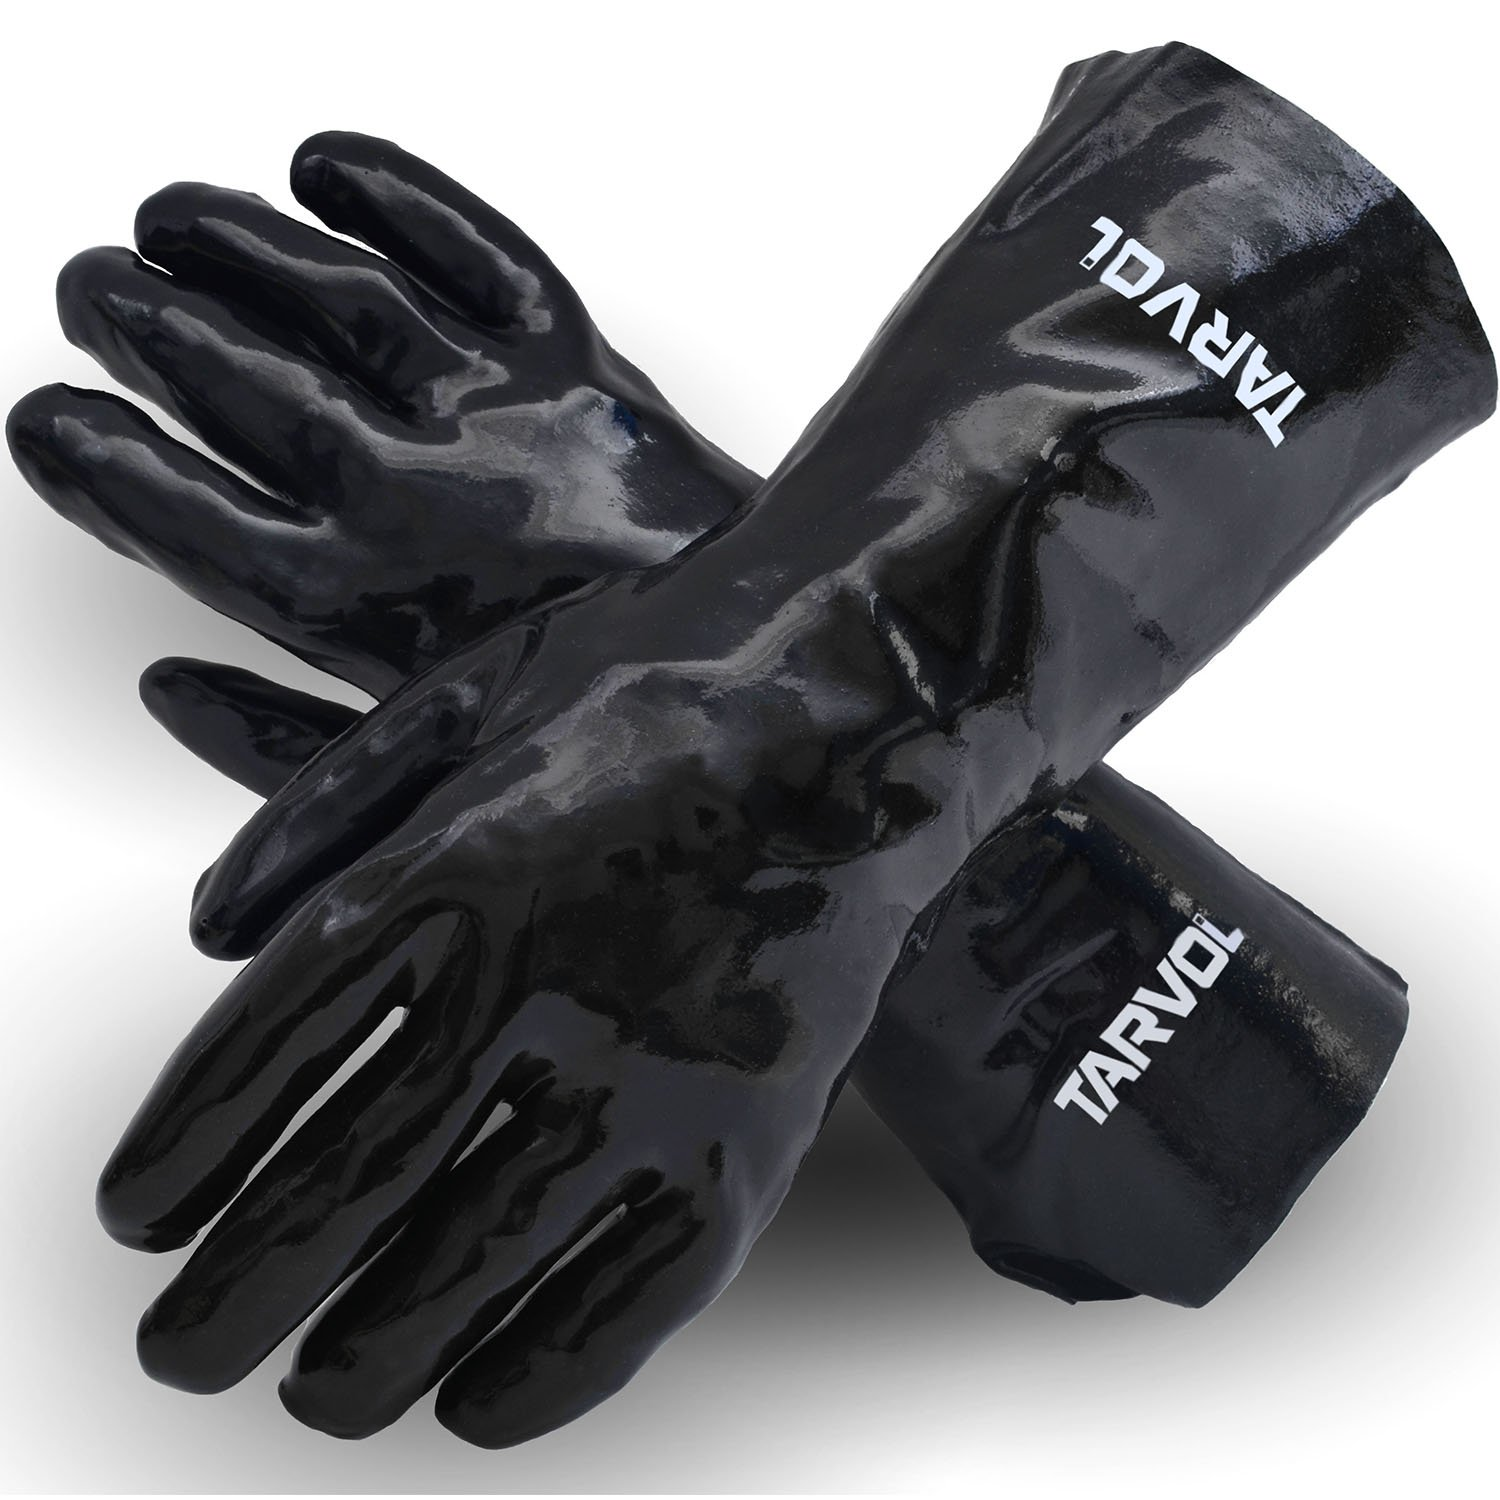 Chemical Resistant PVC Gloves (HEAVY DUTY INDUSTRIAL GRADE) Long Cuff Provides Wrist & Forearm Protection - Perfect for Cleaning and Protection from Acid, Grease, Oil, Lab, Solvents, More!